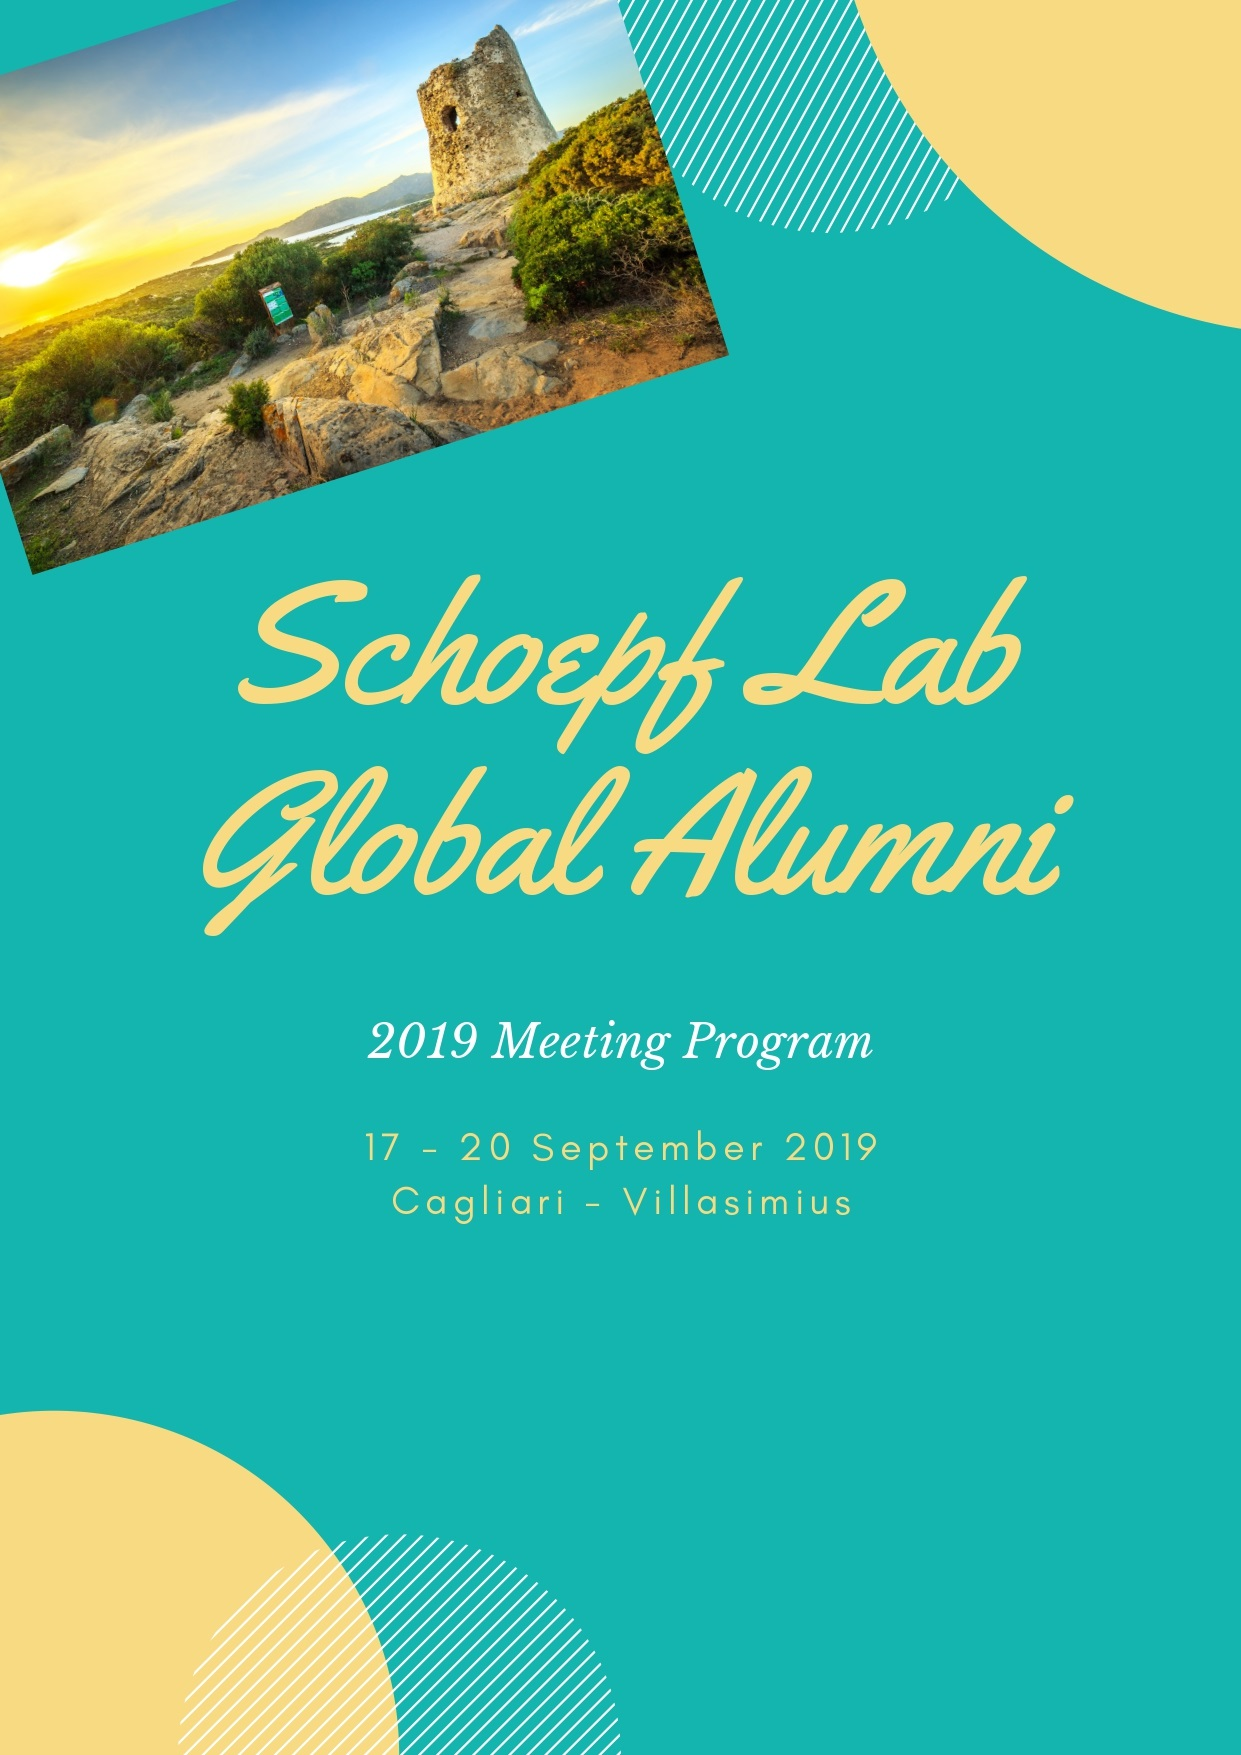 SCIENTIFIC PROCEEDINGS OF THE  SCHOEPF LAB GLOBAL ALUMNI